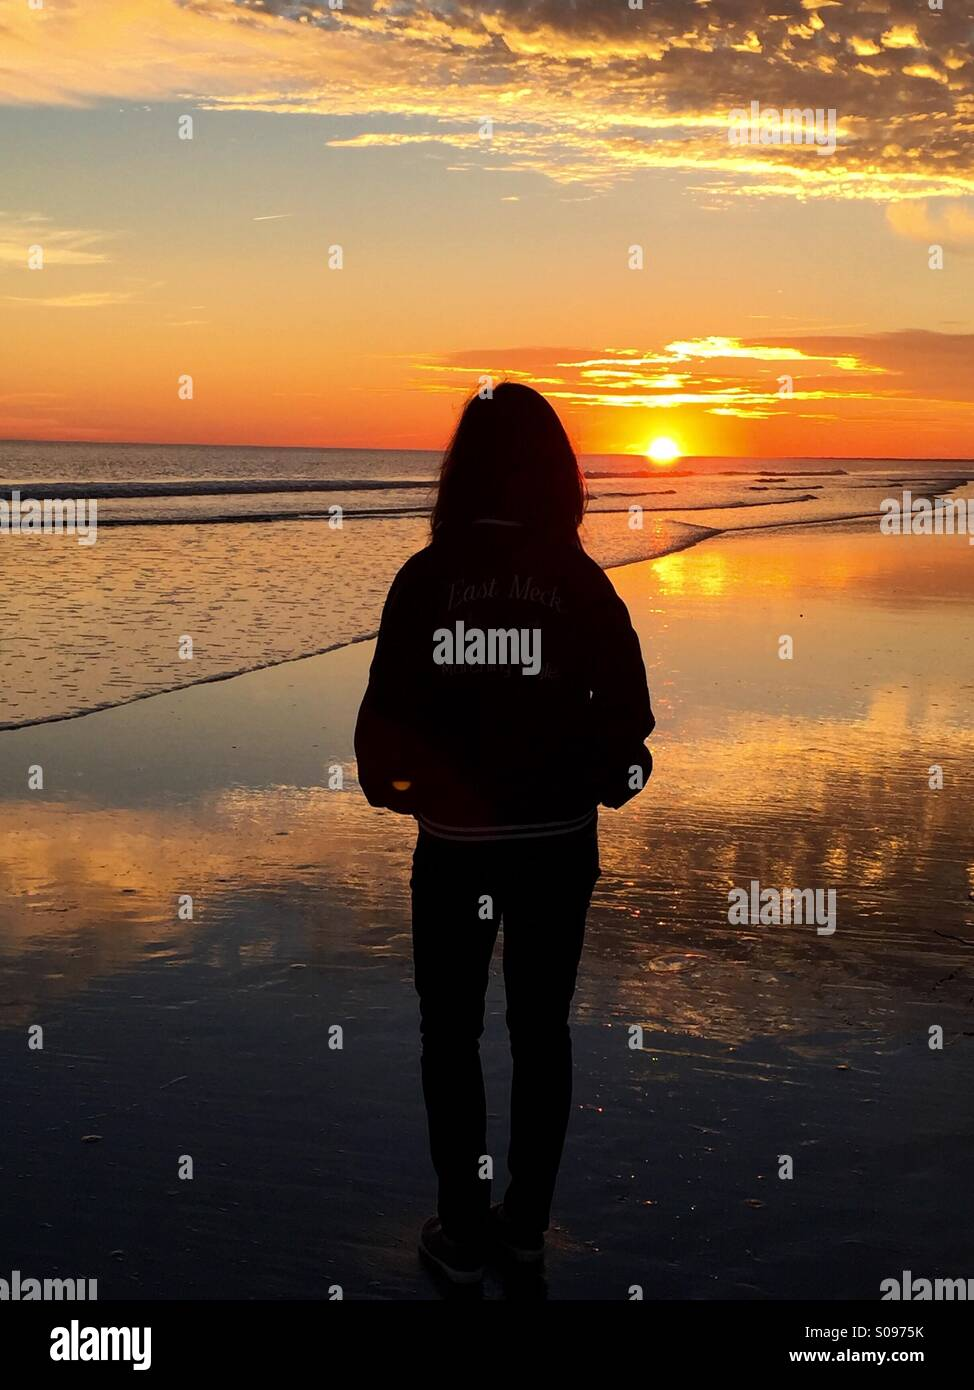 And woman is silhouetted against the intense, beautiful sunset at the beach on Kiawah Island, South Carolina. - Stock Image